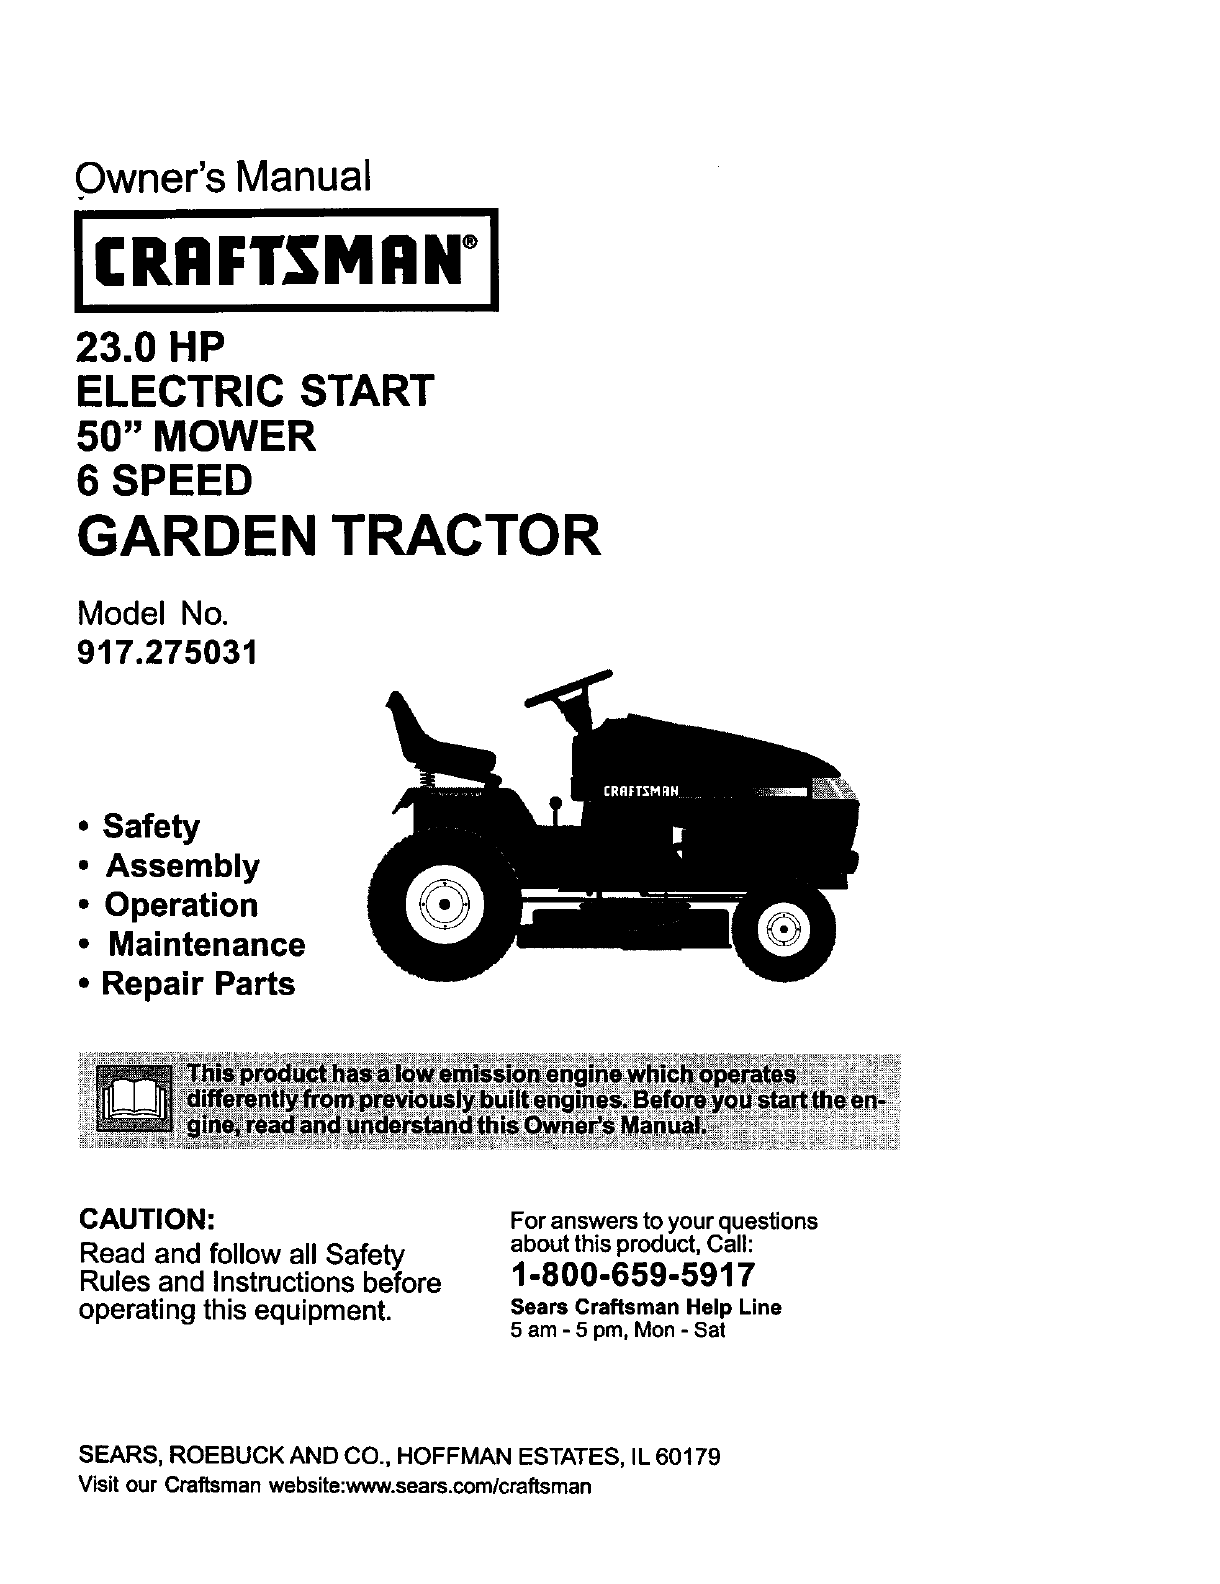 5b113ca1 d1df 4a0d 9ad1 4ef2ceb6a566 bg1 craftsman lawn mower 917 275031 user guide manualsonline com Wright Stander Mower Wiring Diagram at edmiracle.co